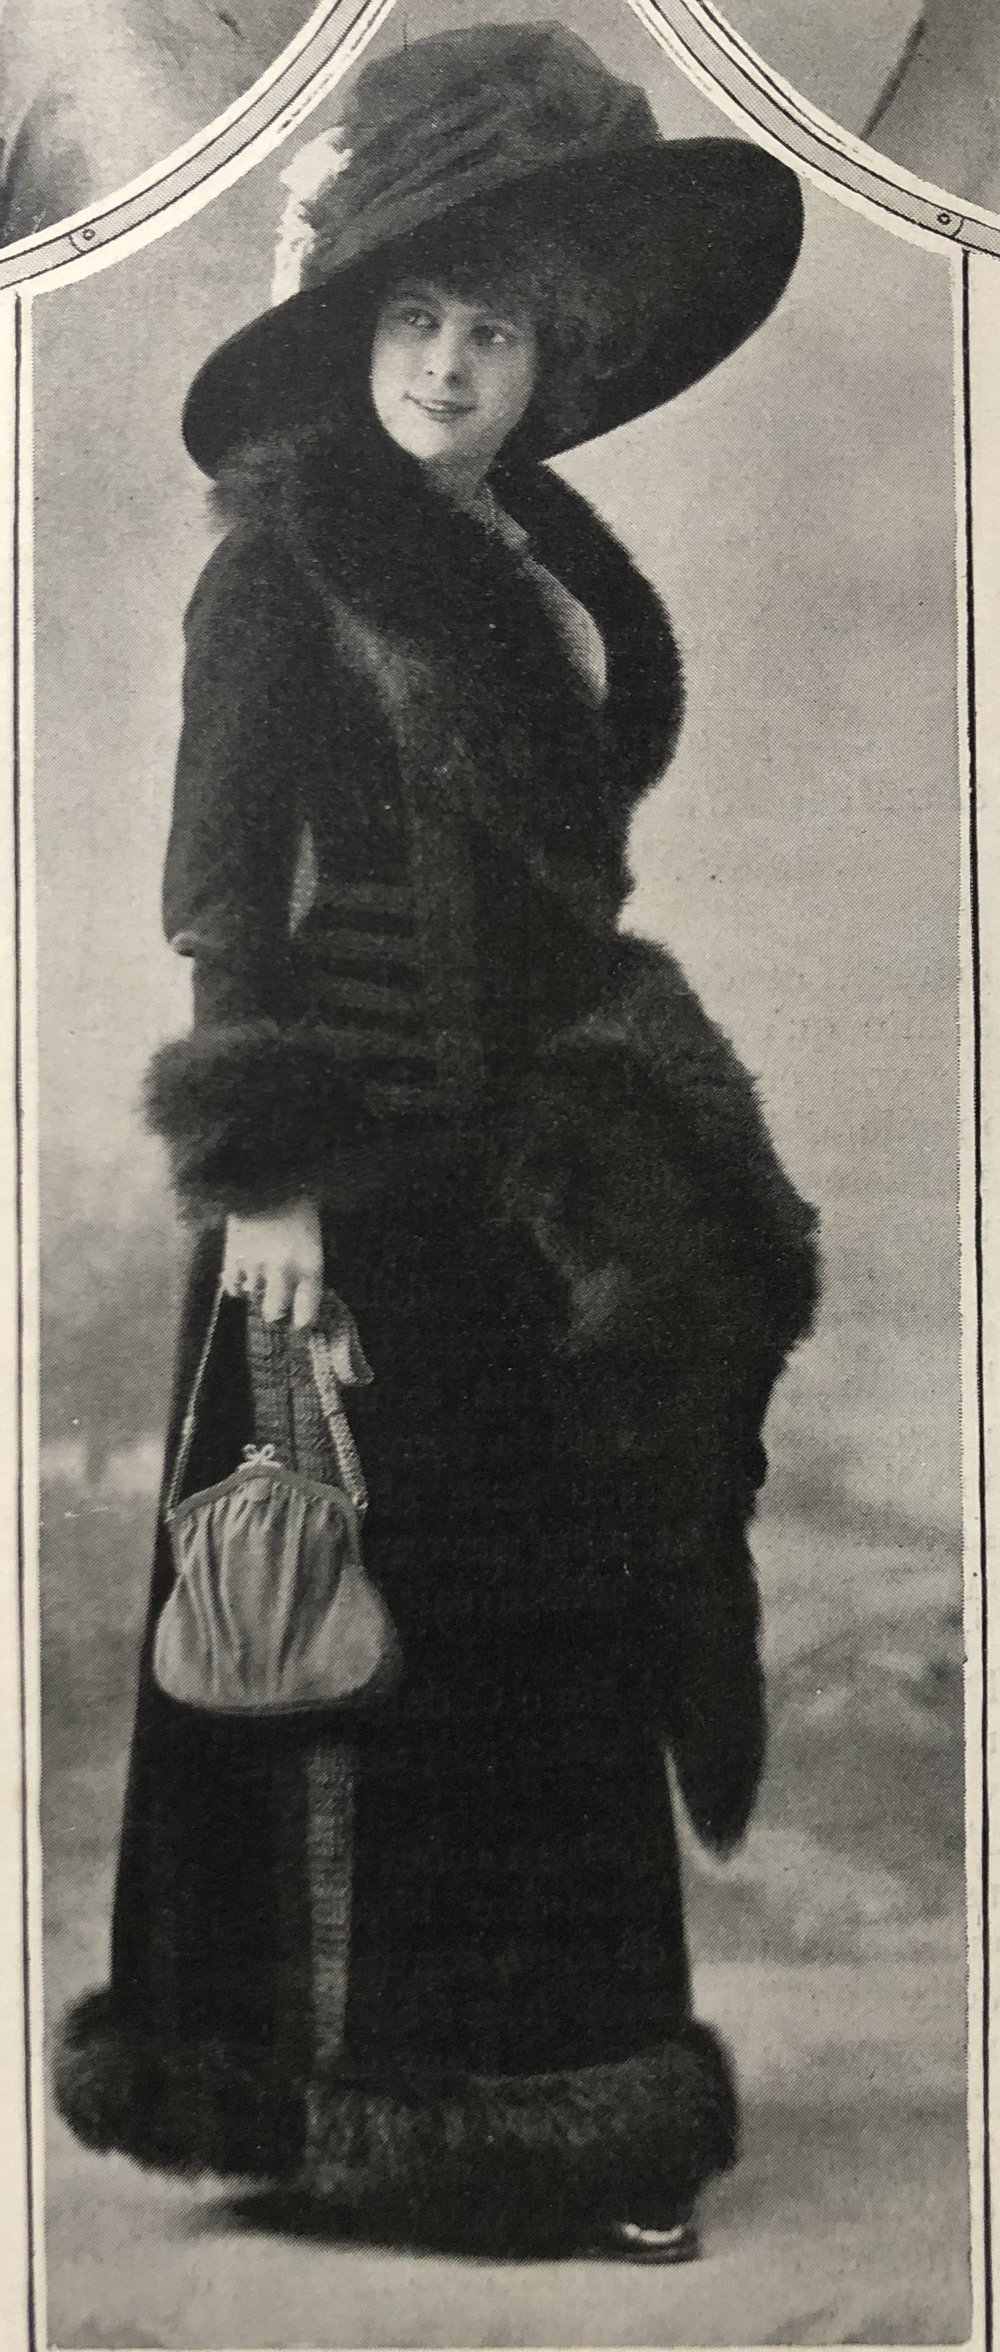 December 1909.  Fur was not only for warmth but incorporated into high fashion. This is the heyday of the big Edwardian hats.   Outfit and hat by Maison Maquet 10, rue de la Paix, Paris